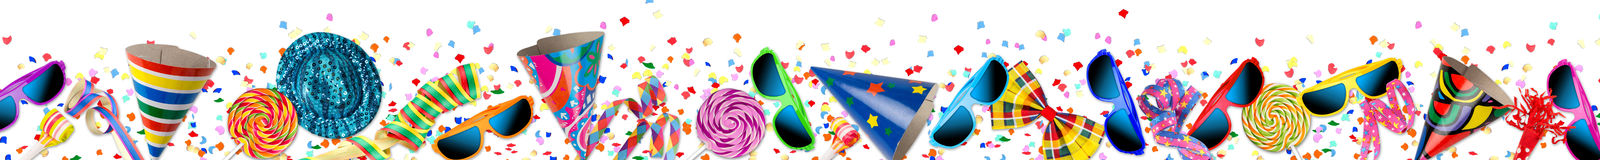 Colorful party carnival birthday celebration background. Colorful wide panorama party carnival birthday celebration background with colorful streamer candy lolly stock image